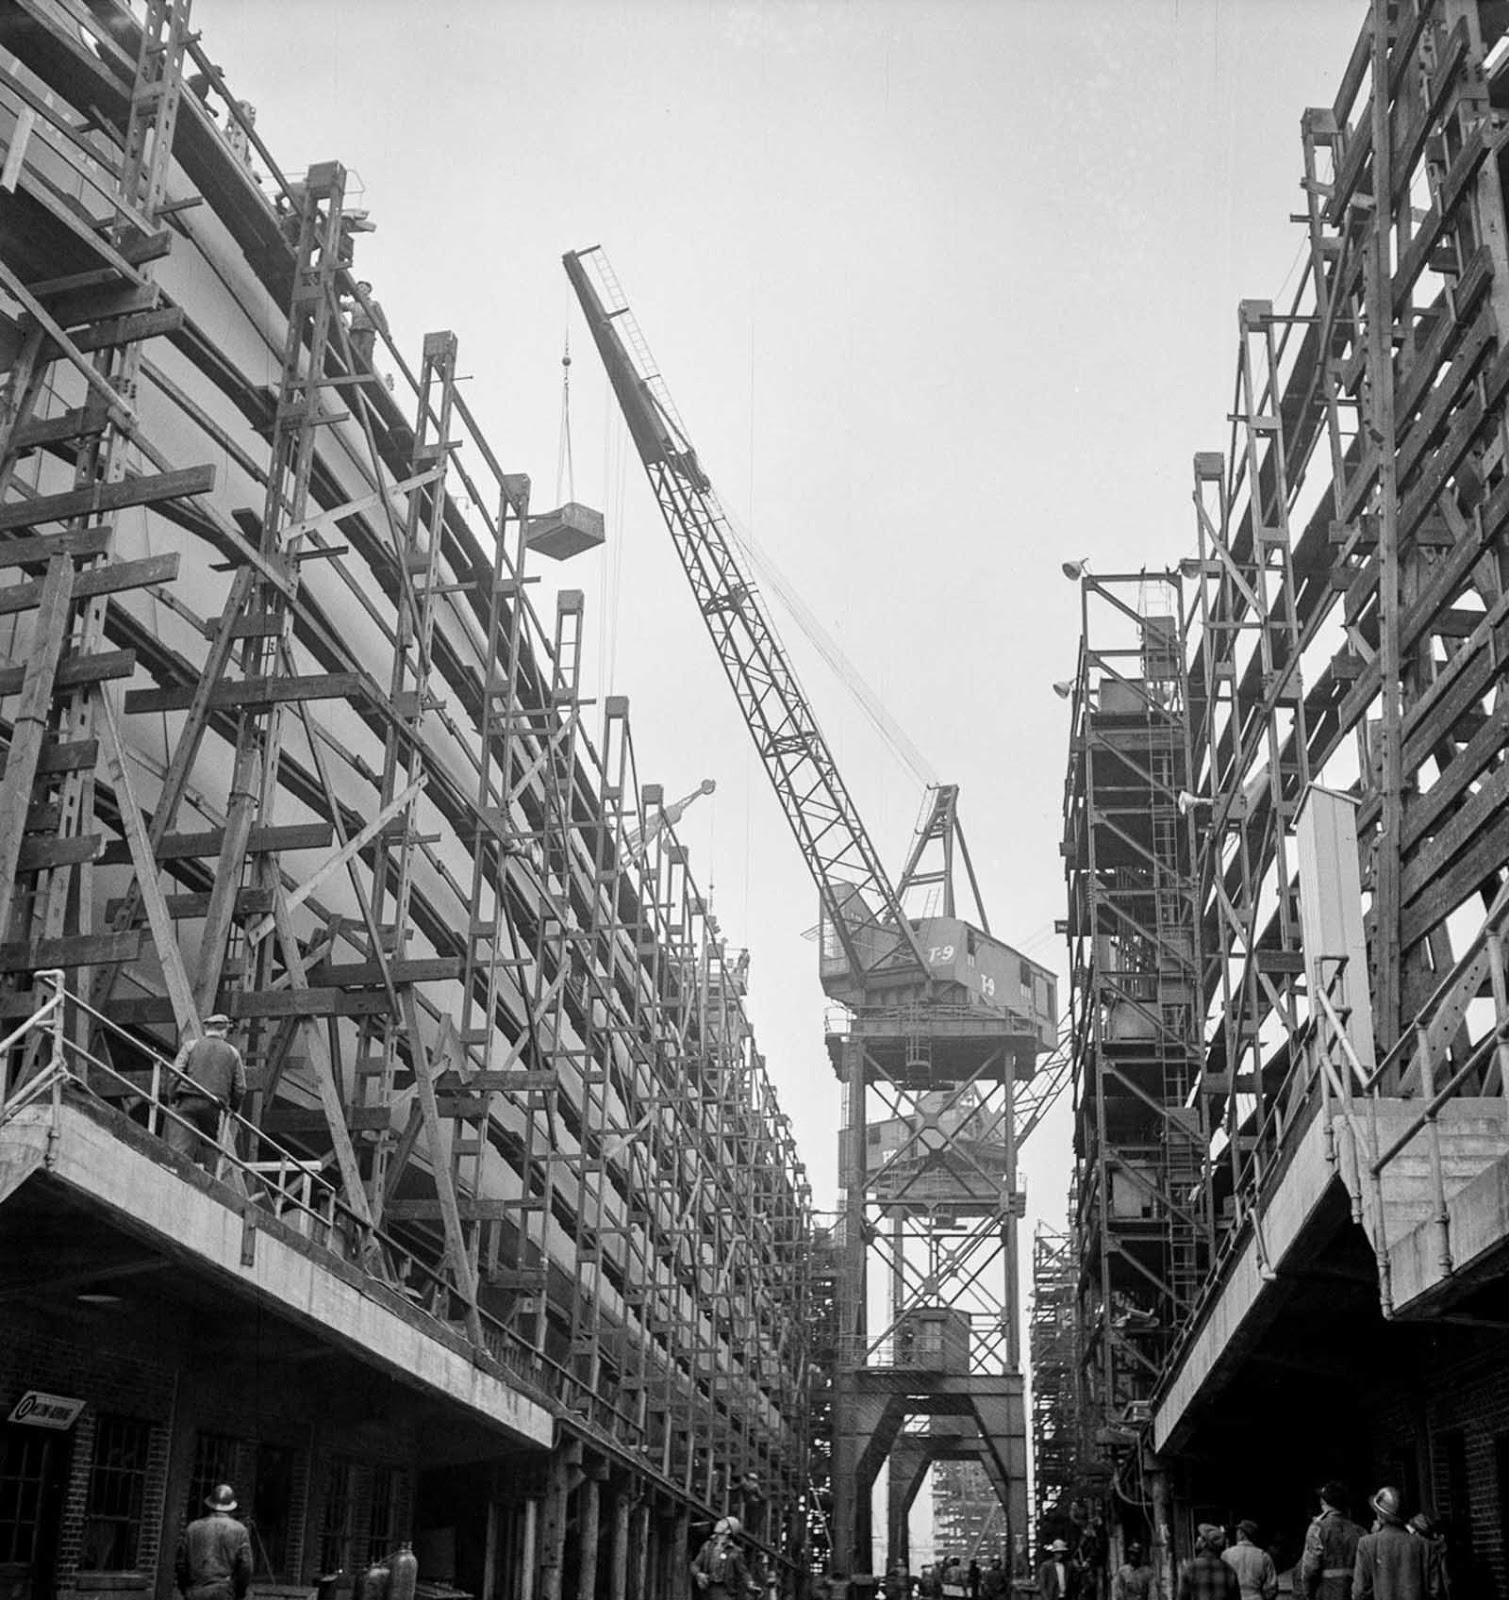 Liberty ships under construction.